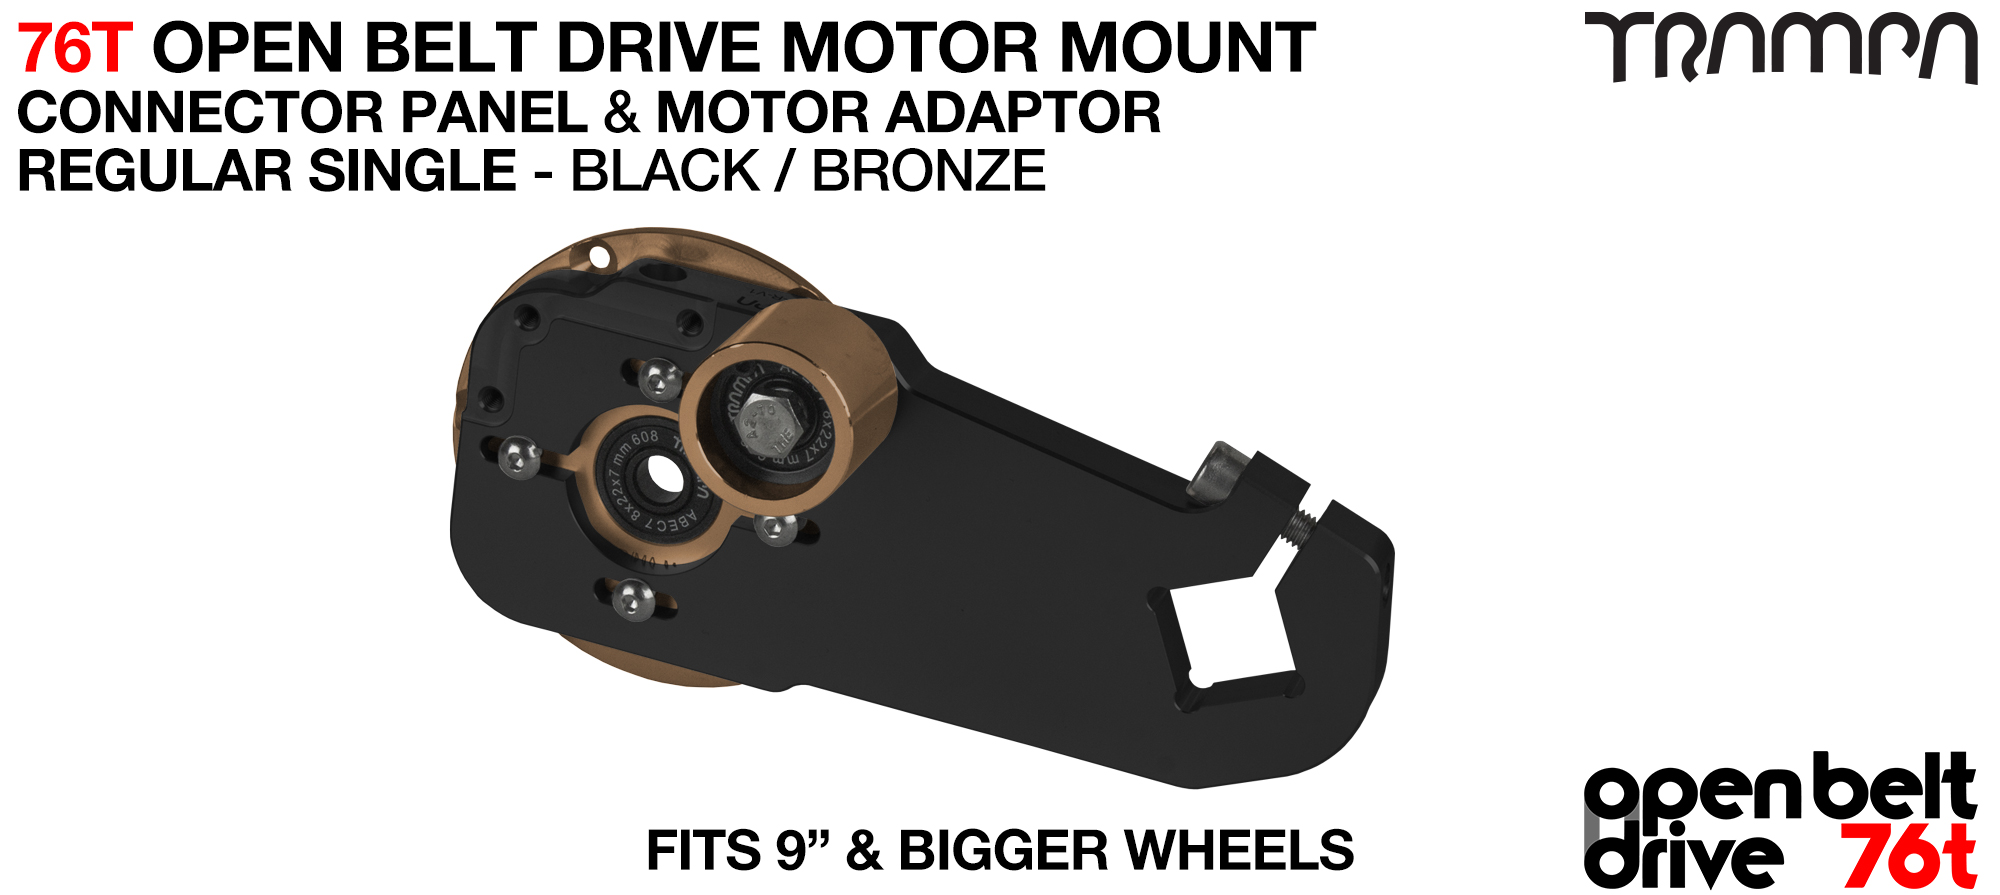 76T Open Belt Drive Motor Mount & Motor Adaptor - SINGLE BRONZE